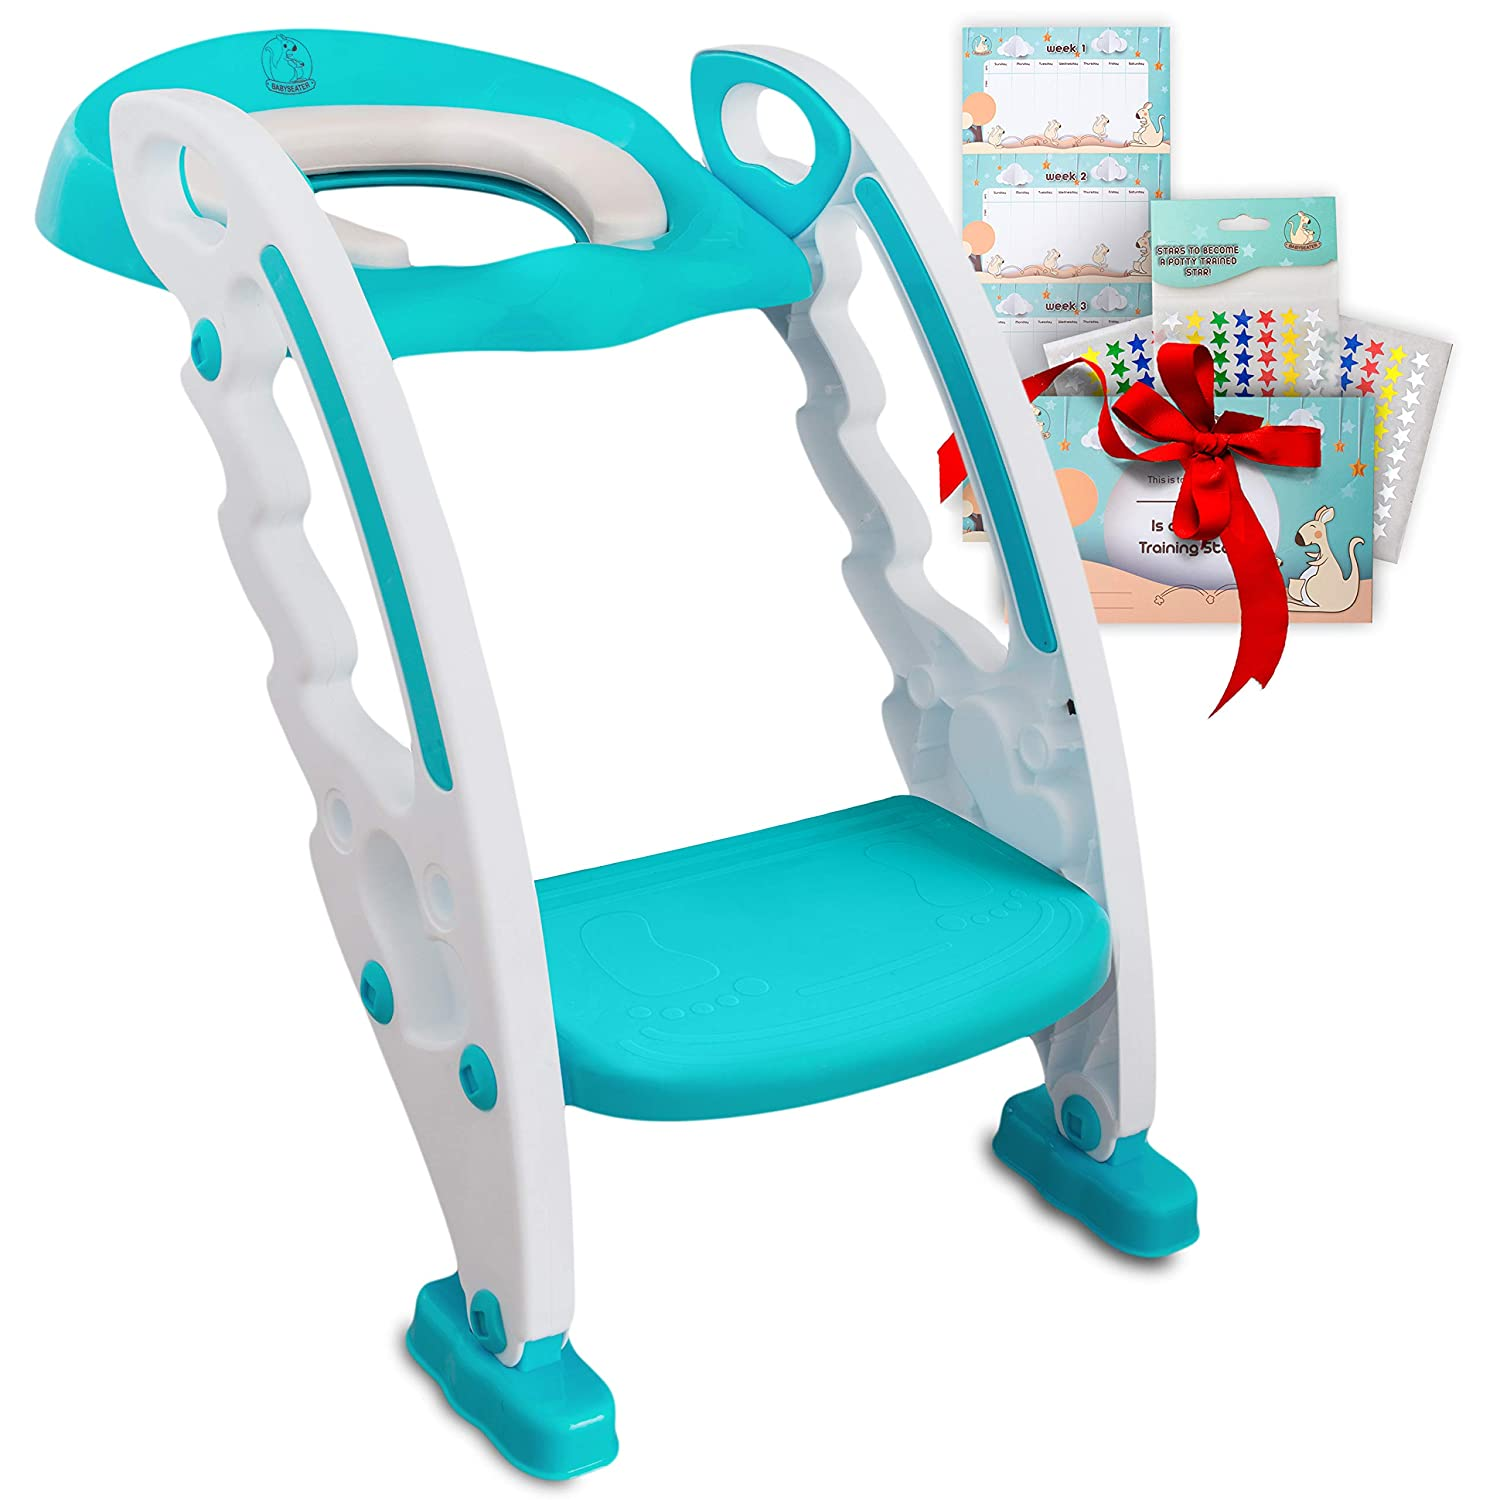 """Toilet Training Seat for Toddlers – Adjustable Stair Potty Seat with Ladder & Handles for Standard 16"""" Toilets – Kids Foldable Step Potty Chair with Anti-Slip Toilet Steps by BabySeater, Turquoise"""